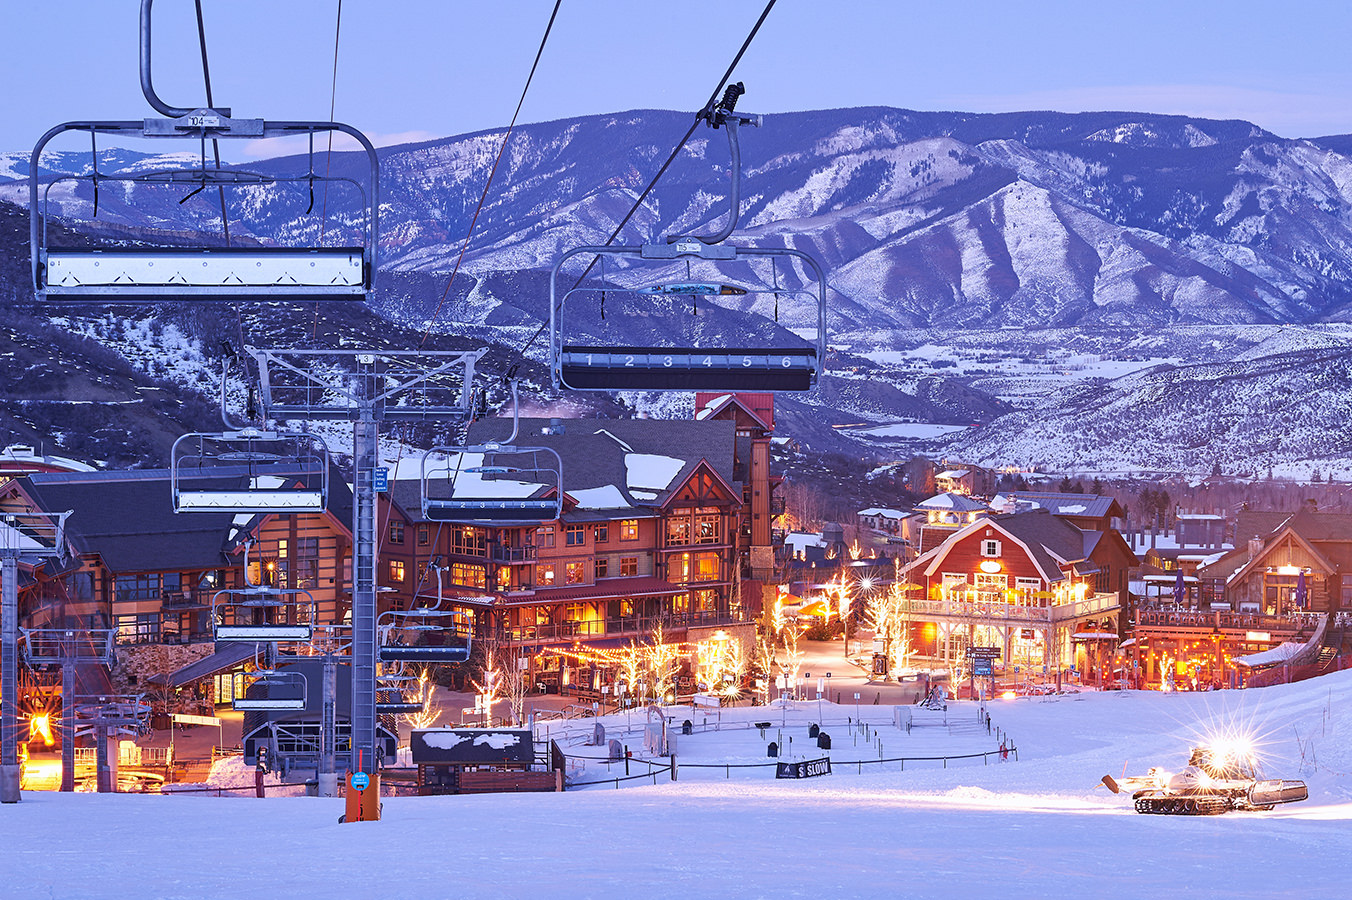 Dusk photography of Snowmass Village with a snowcat in winter